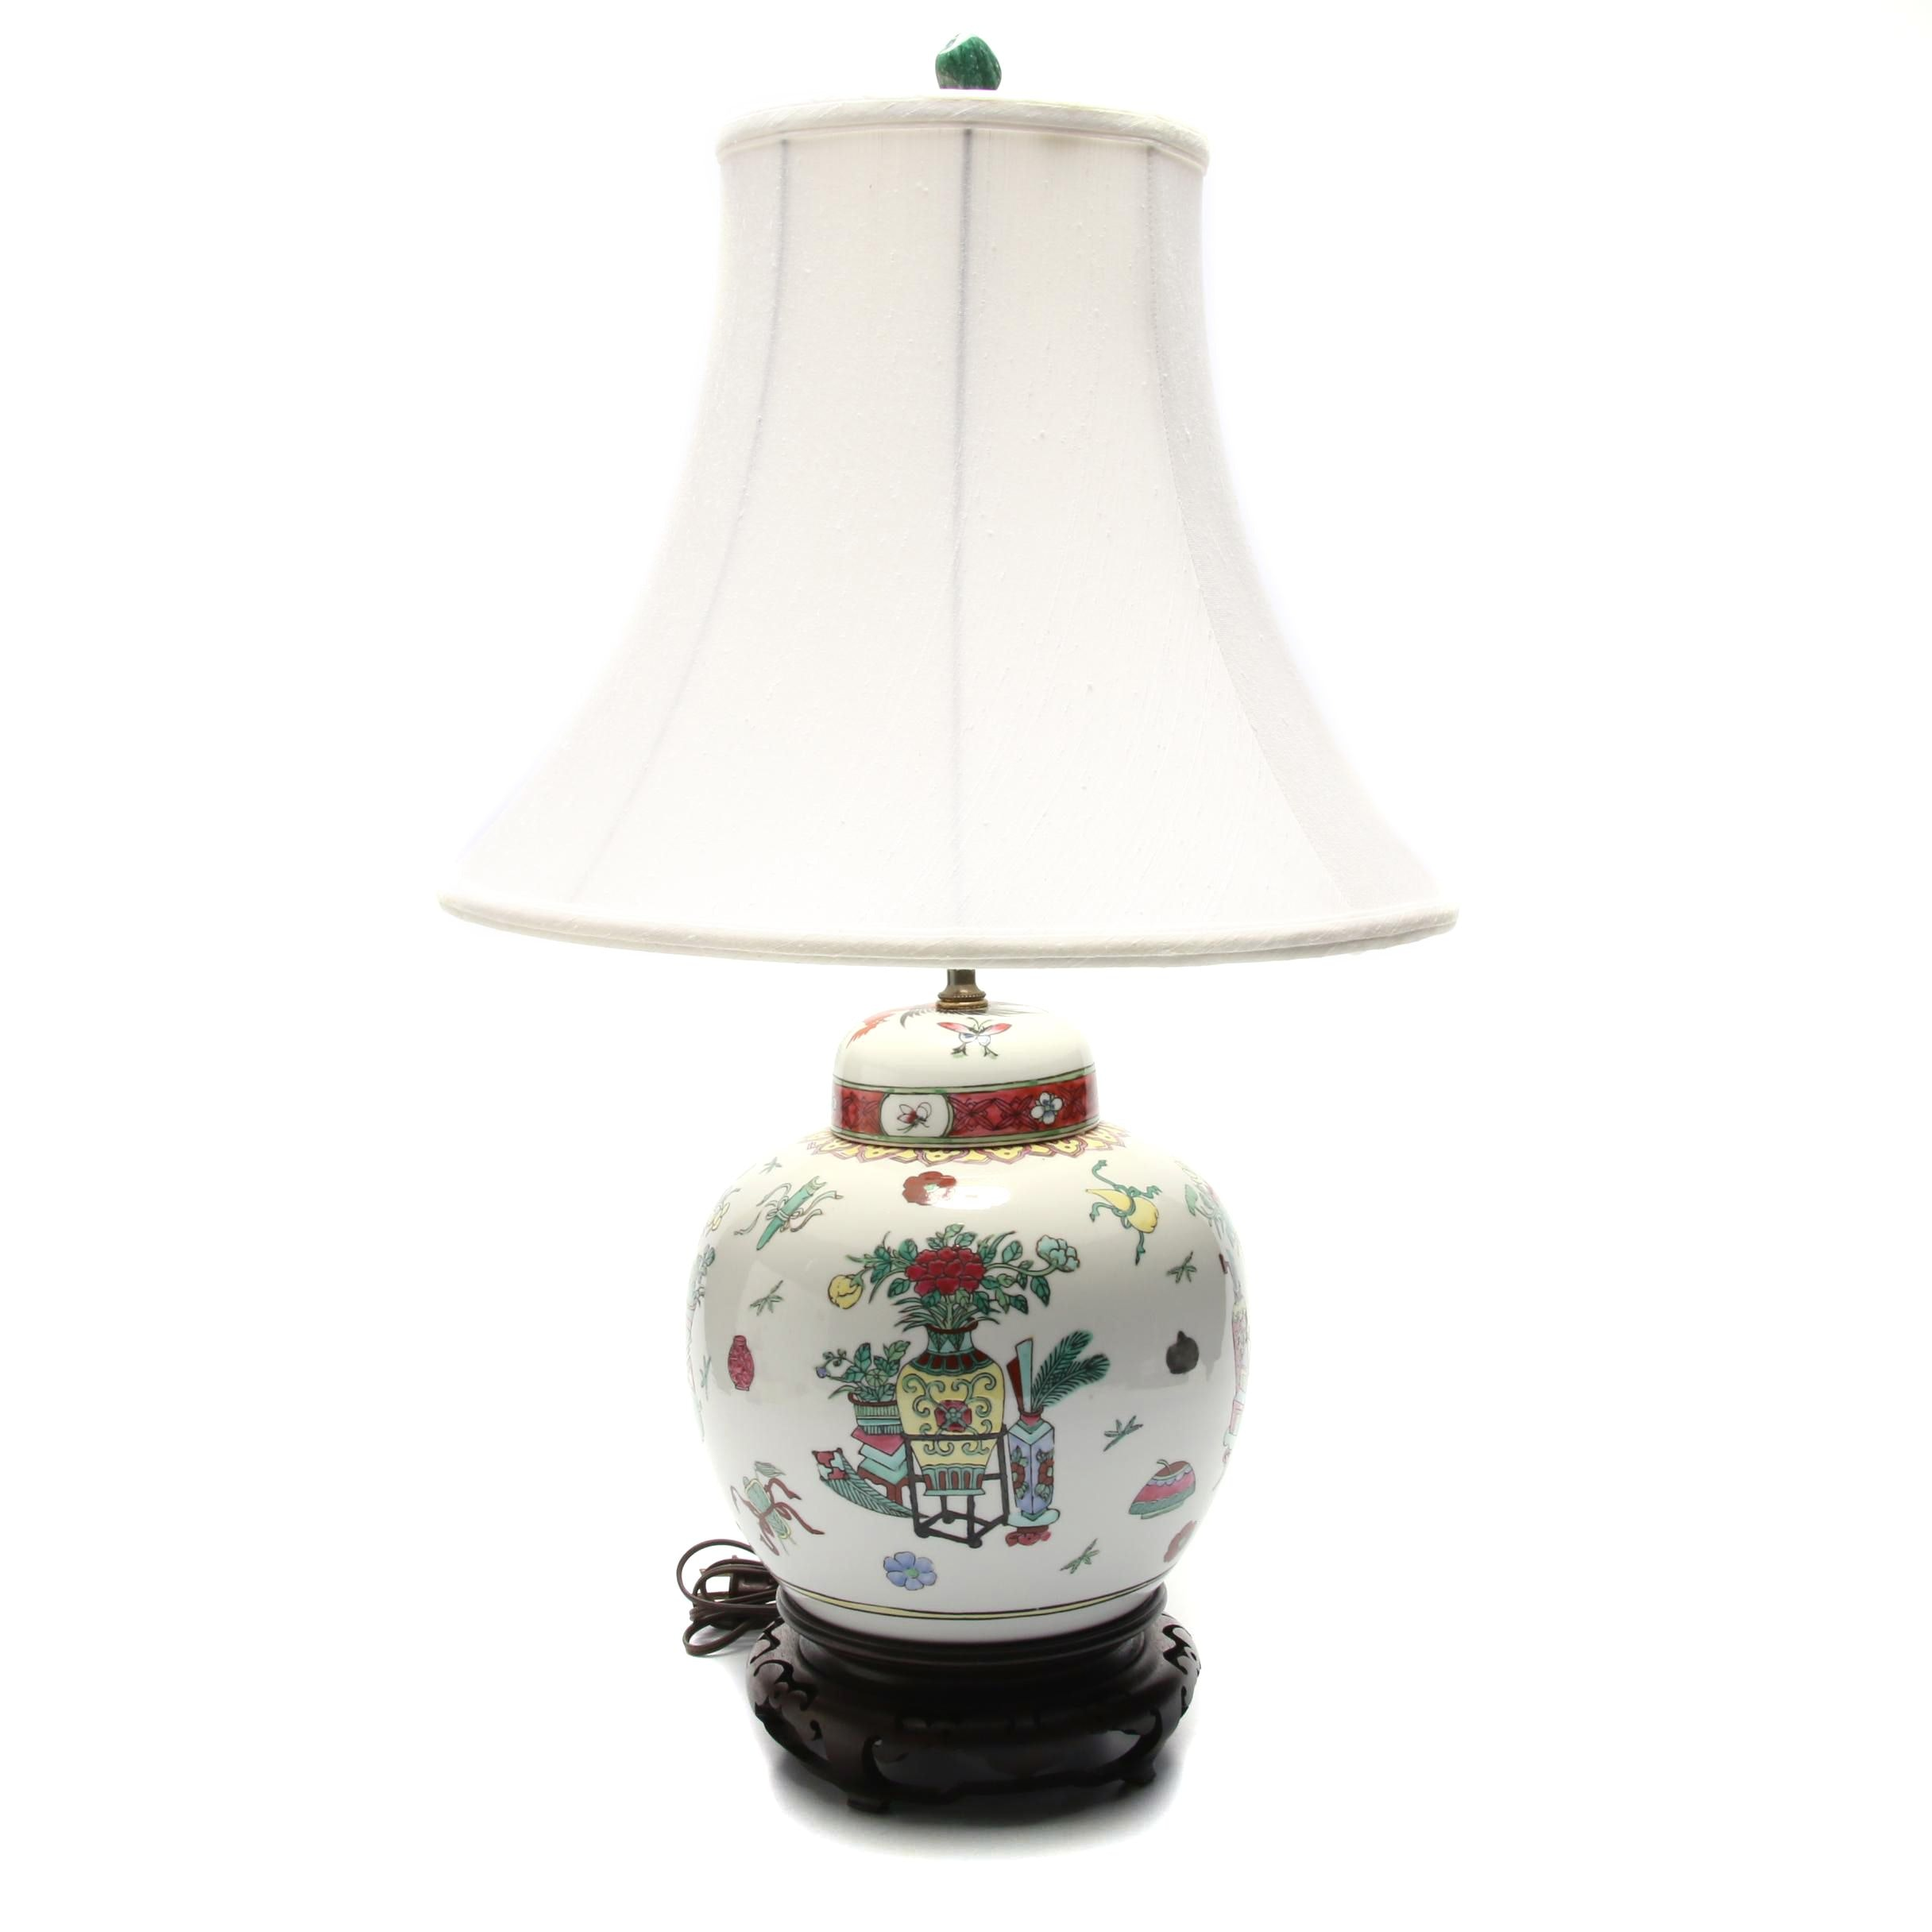 Chinese Ginger Jar Table Lamp